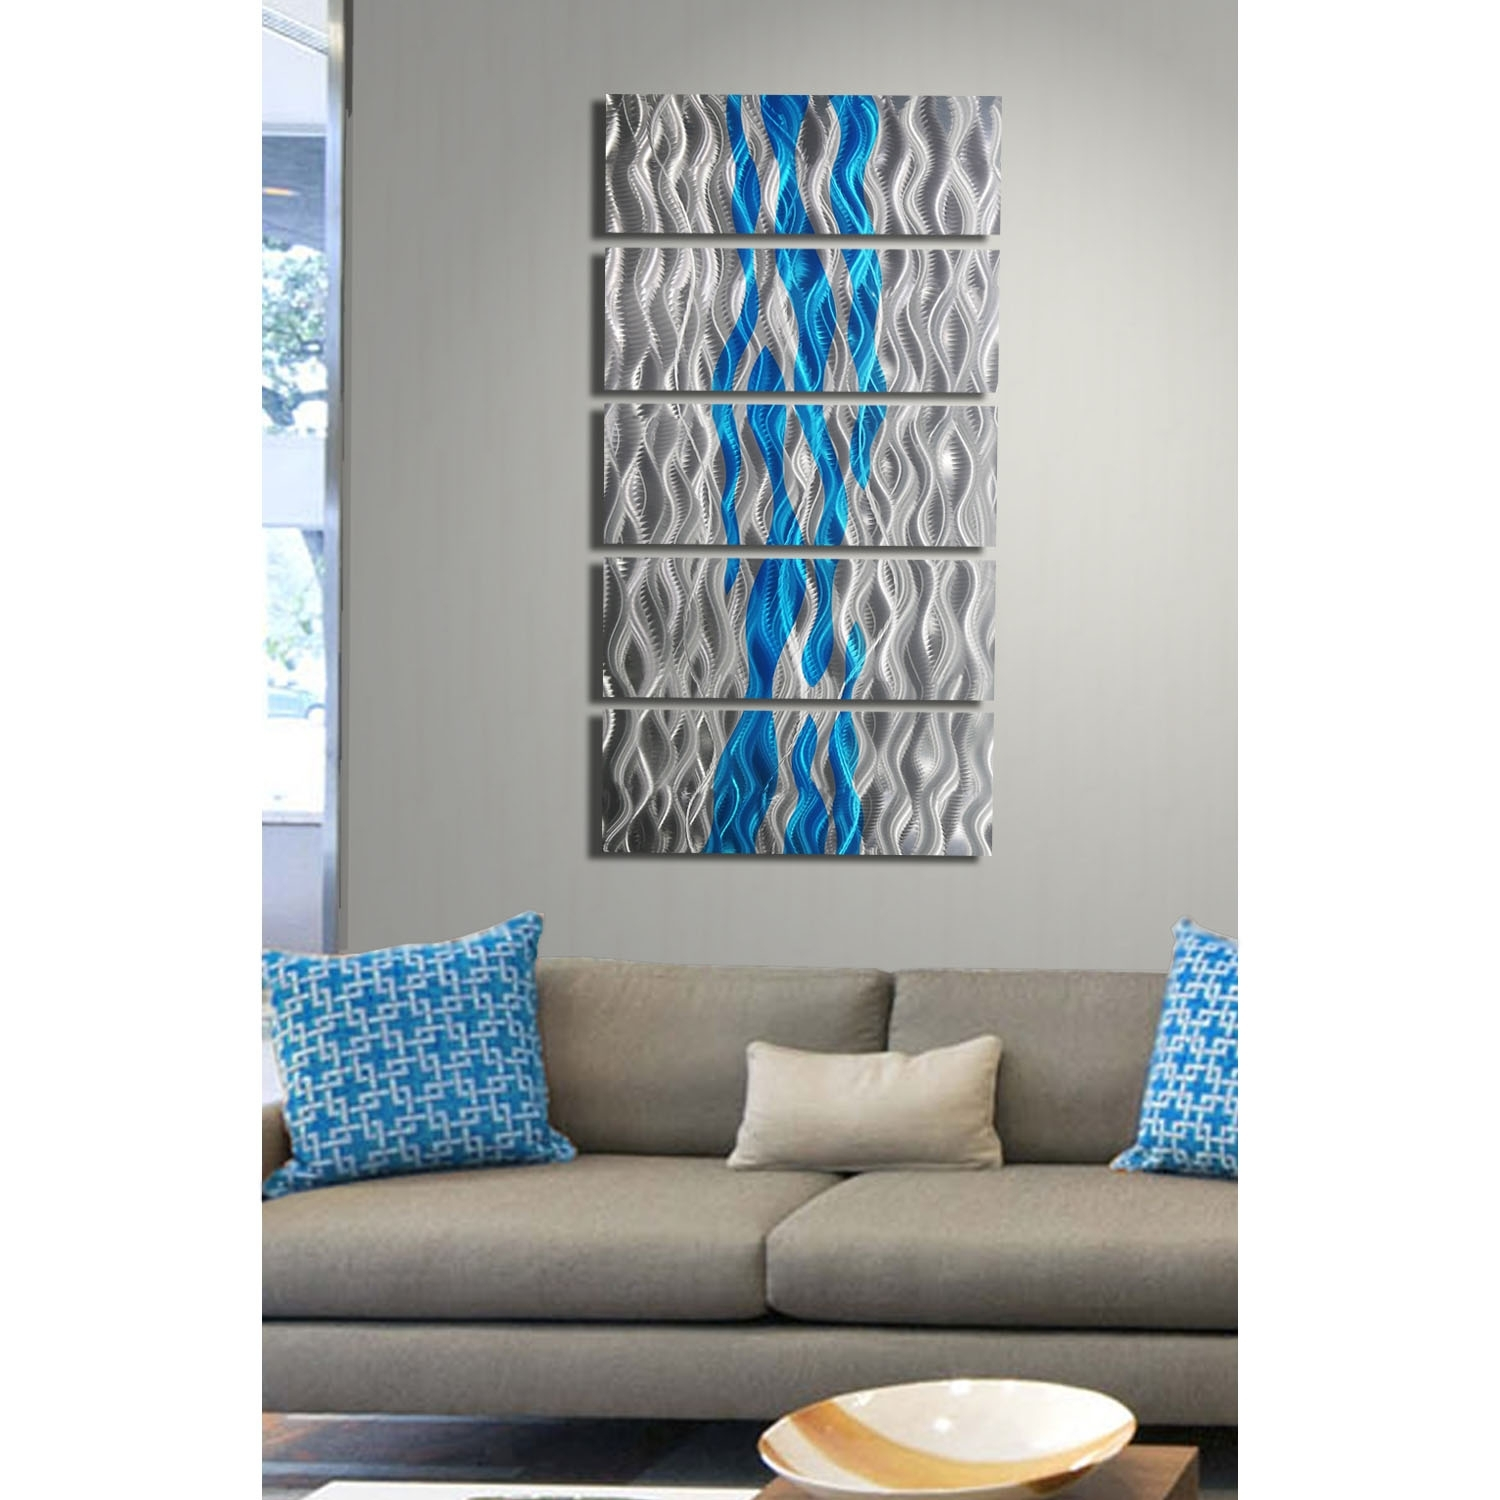 Aqua Oceana – Silver And Aqua Metal Wall Art – 5 Panel Wall Décor Regarding Newest Turquoise Wall Art (View 4 of 20)